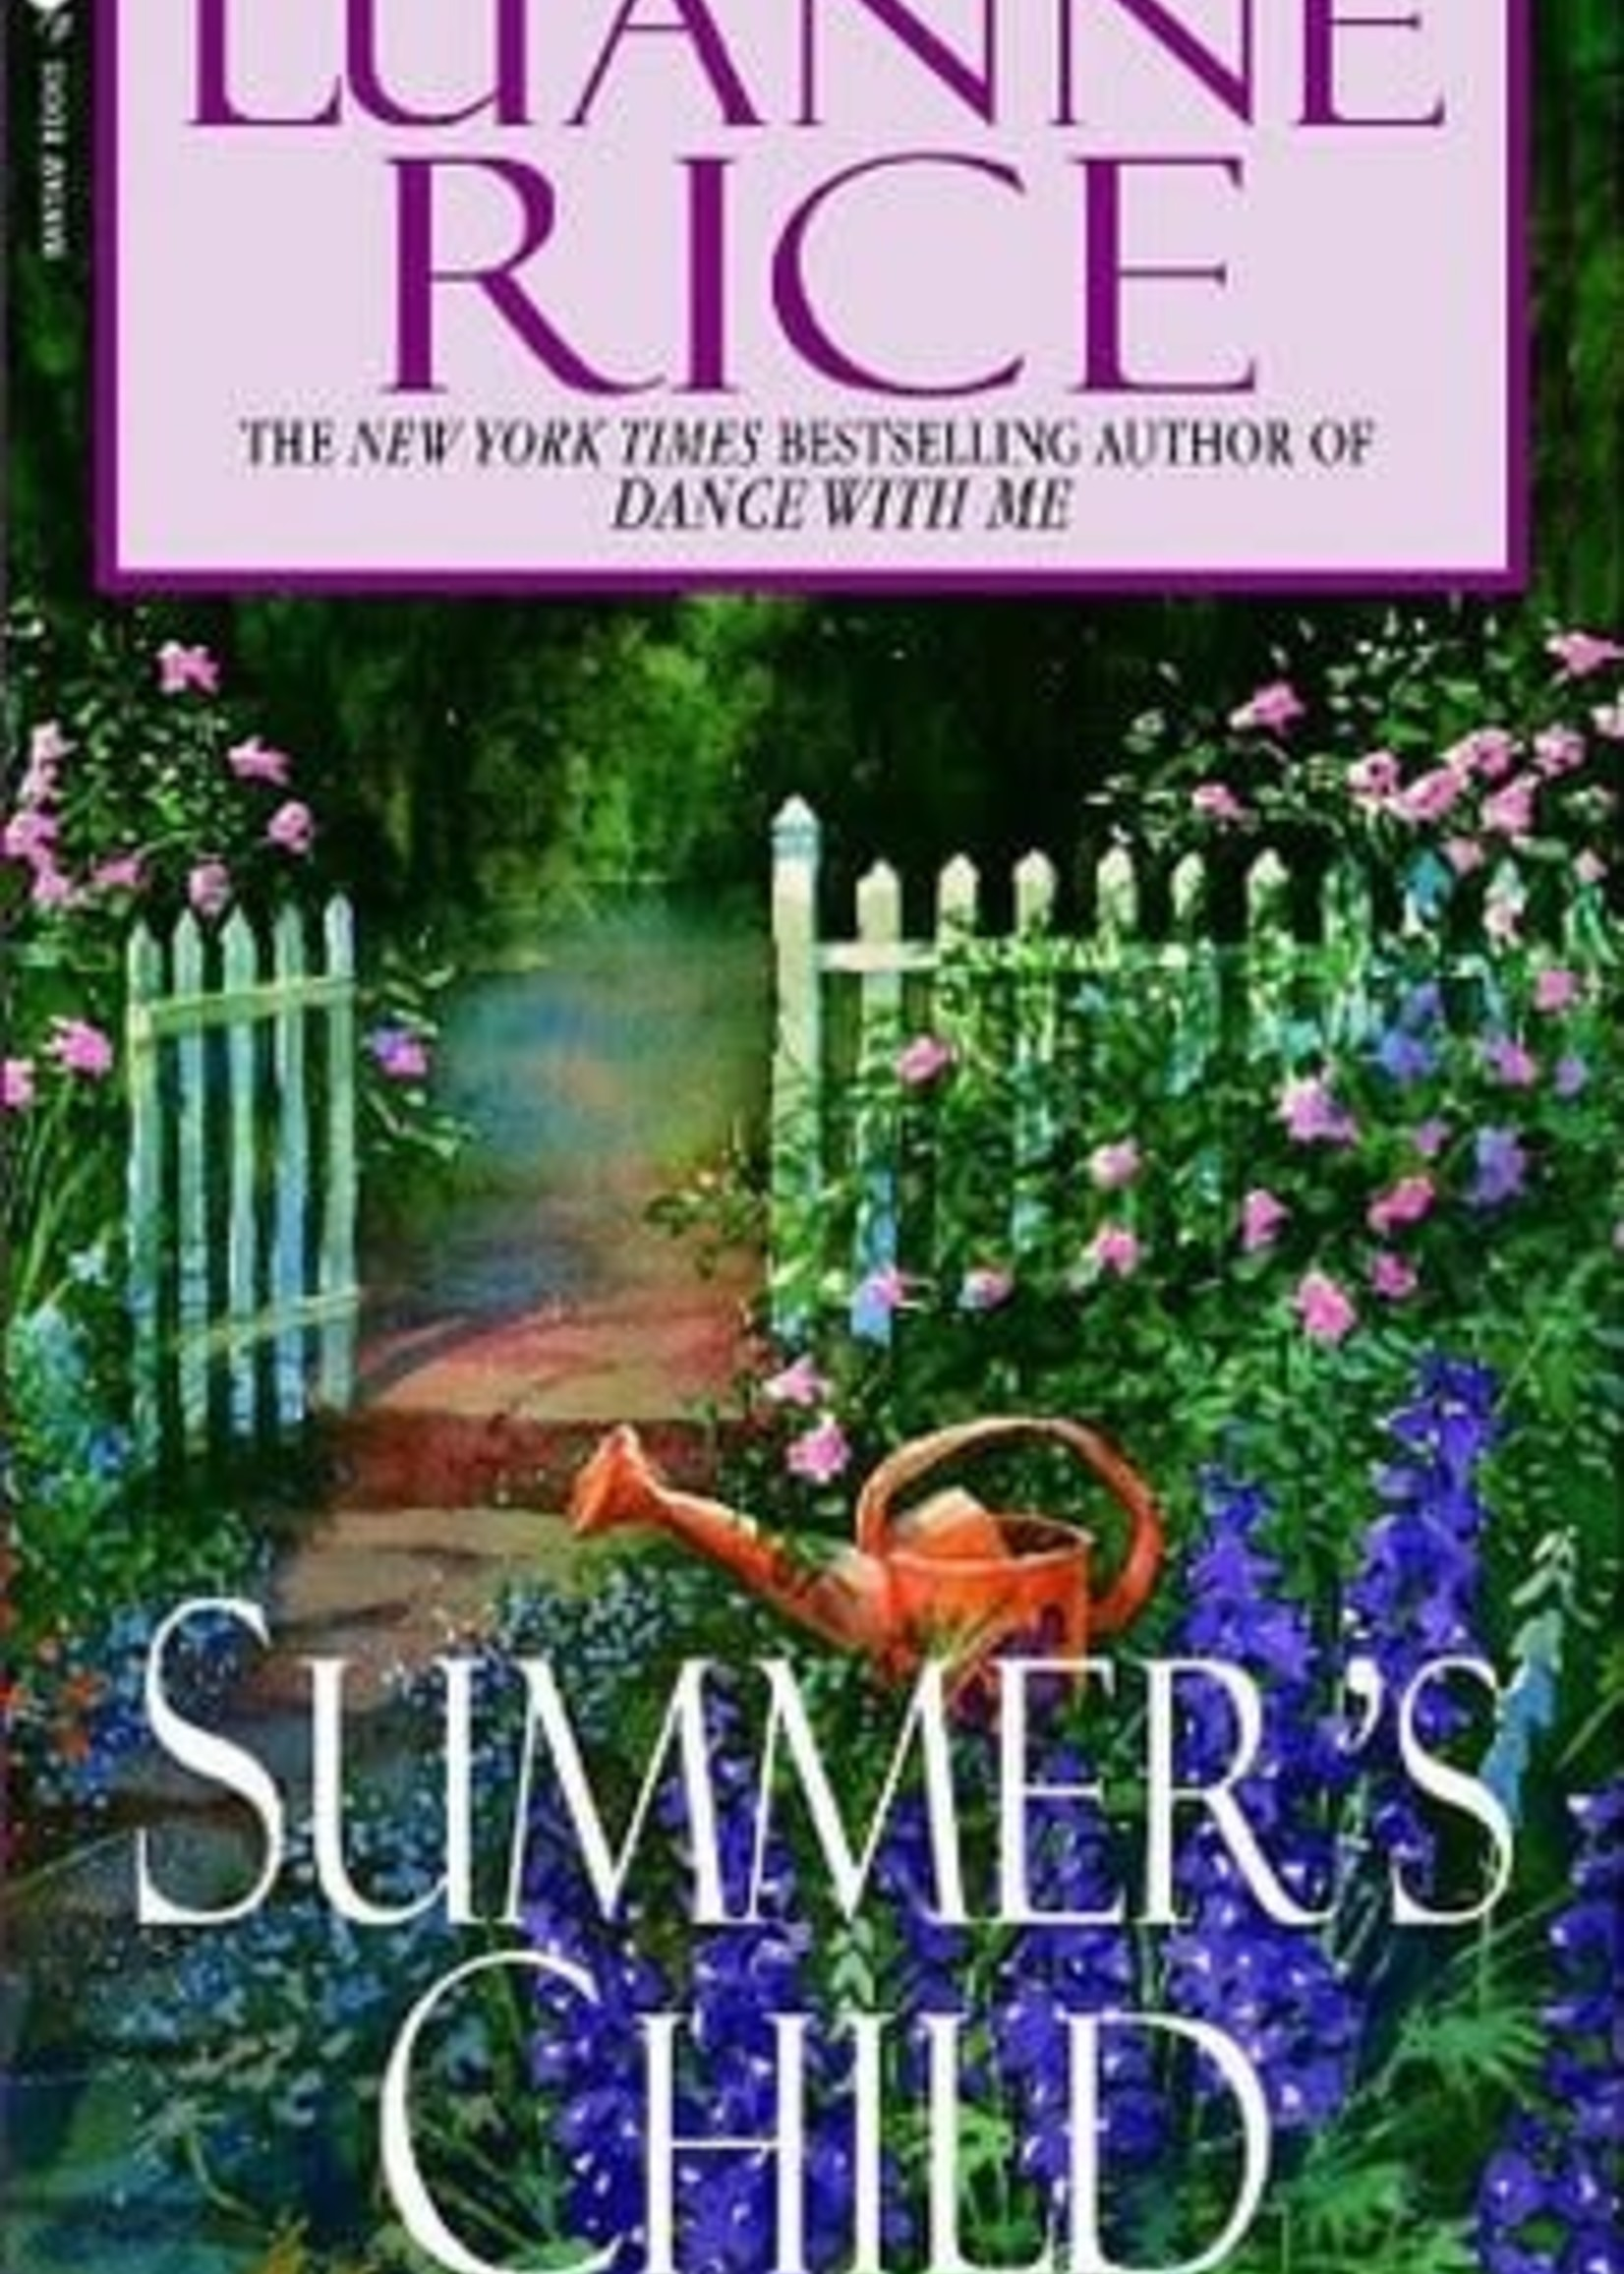 USED - Summer's Child by Luanne Rice